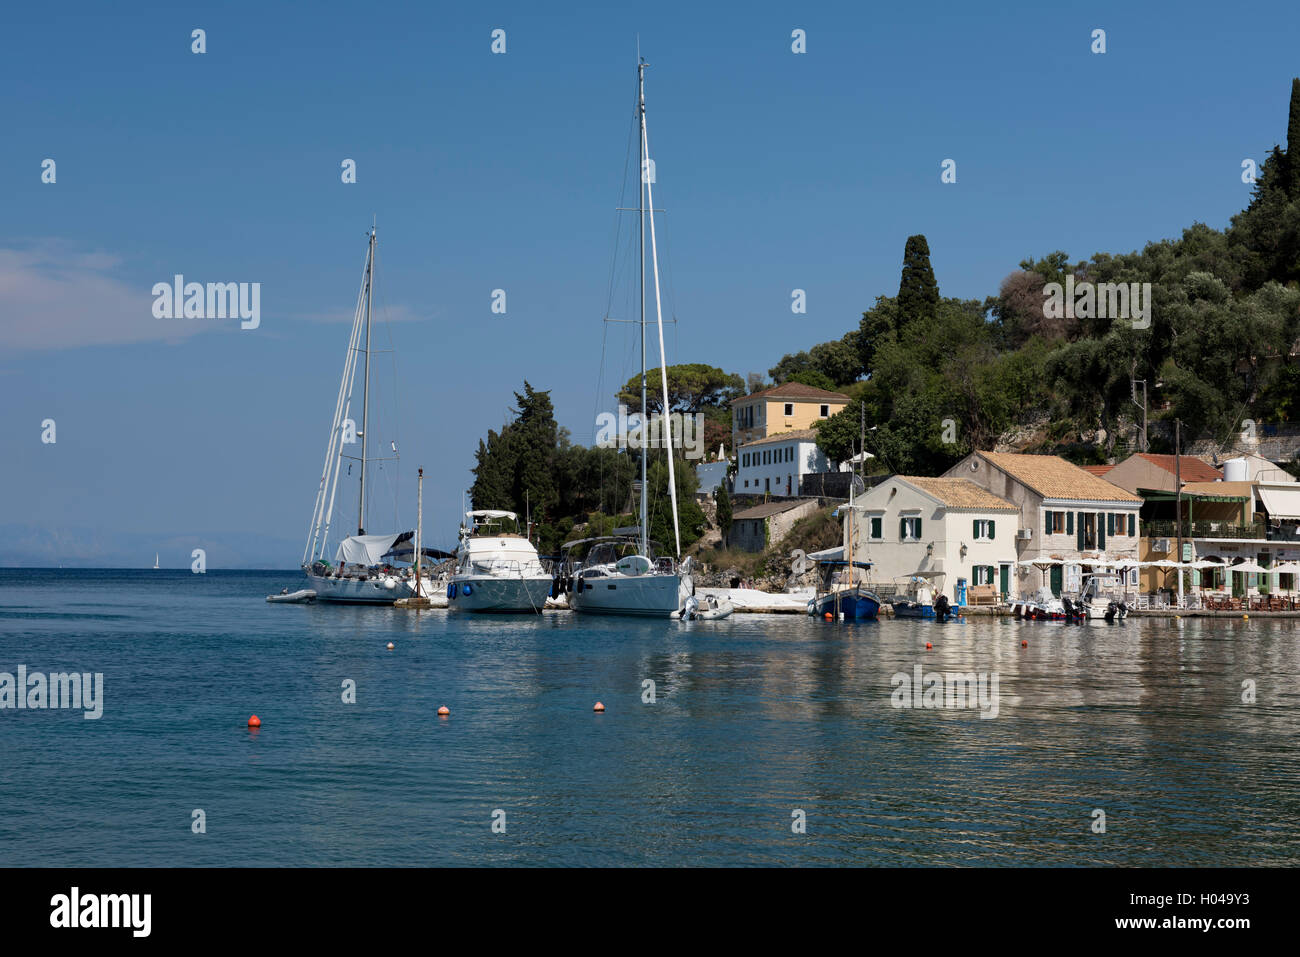 The picturesque harbour of Loggos on Paxos, The Ionian Islands, Greece, Europe - Stock Image